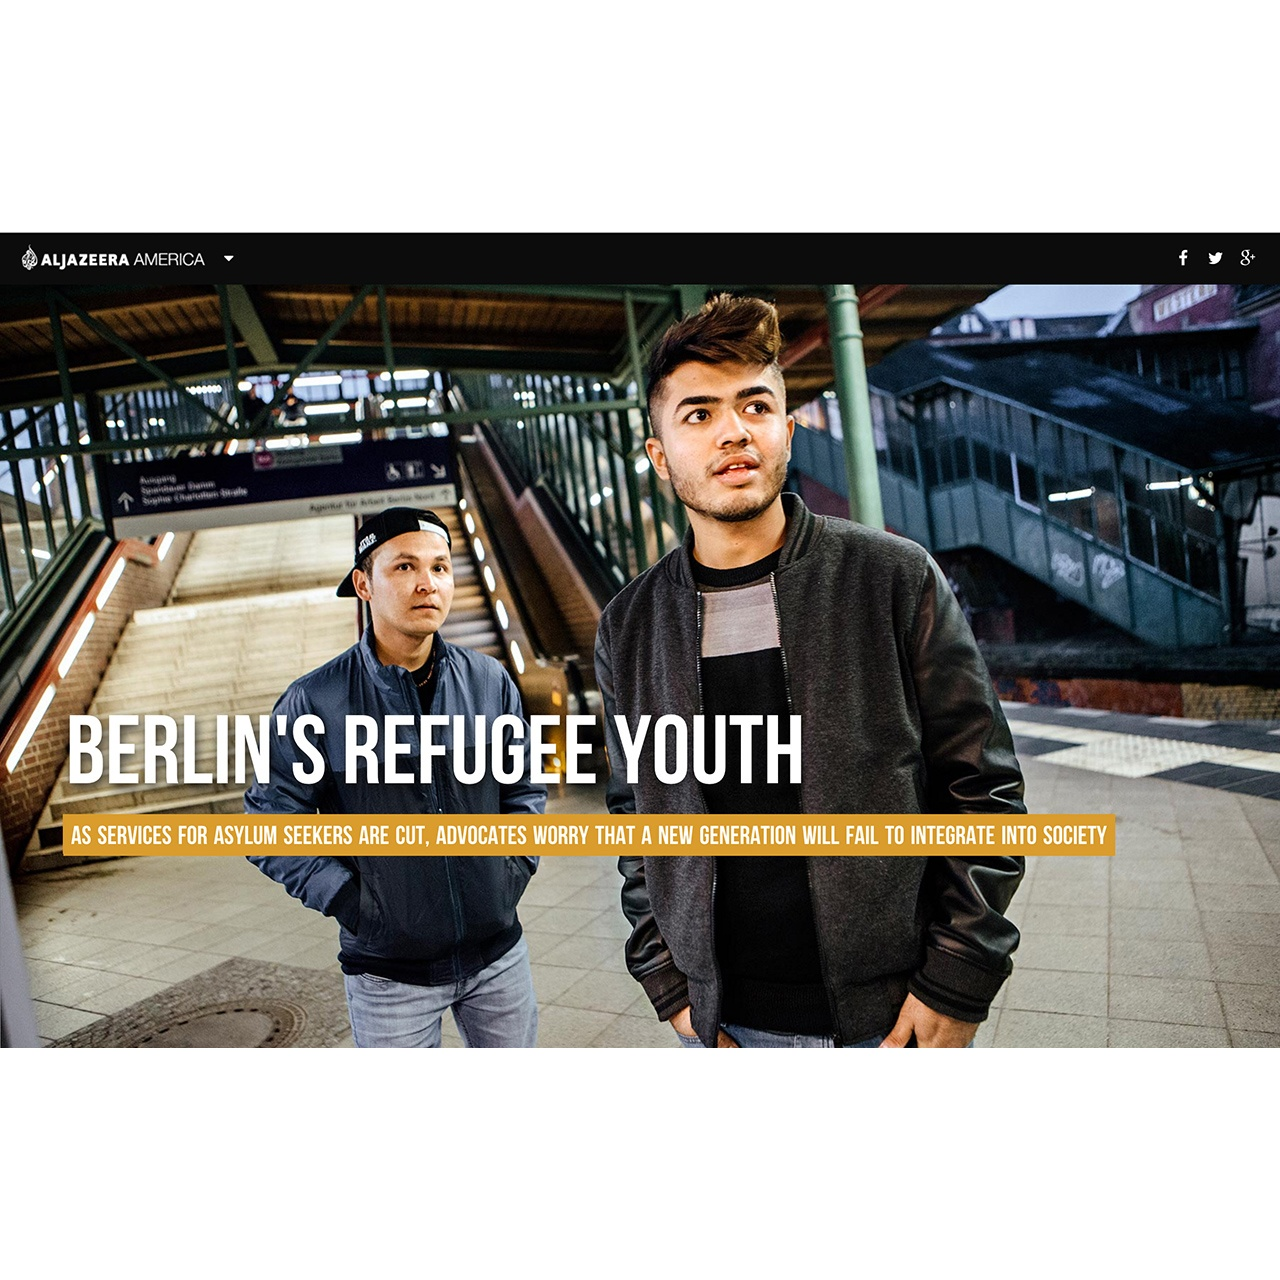 Berlin's Refugee Youth